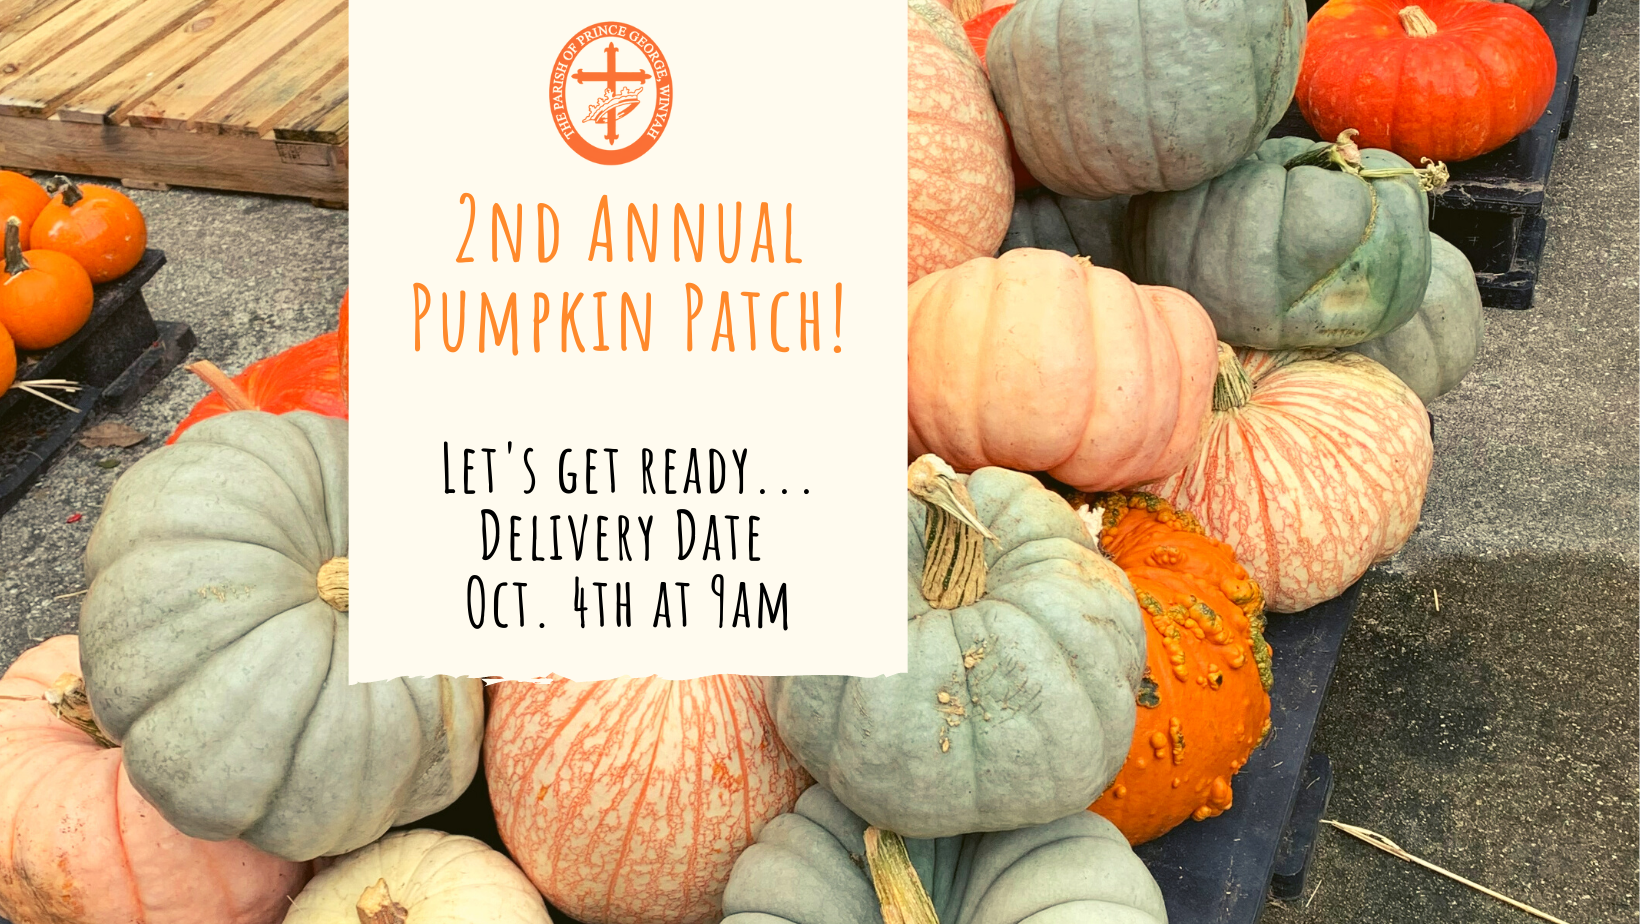 Unloading and Pumpkin delivery (Facebook Cover) image